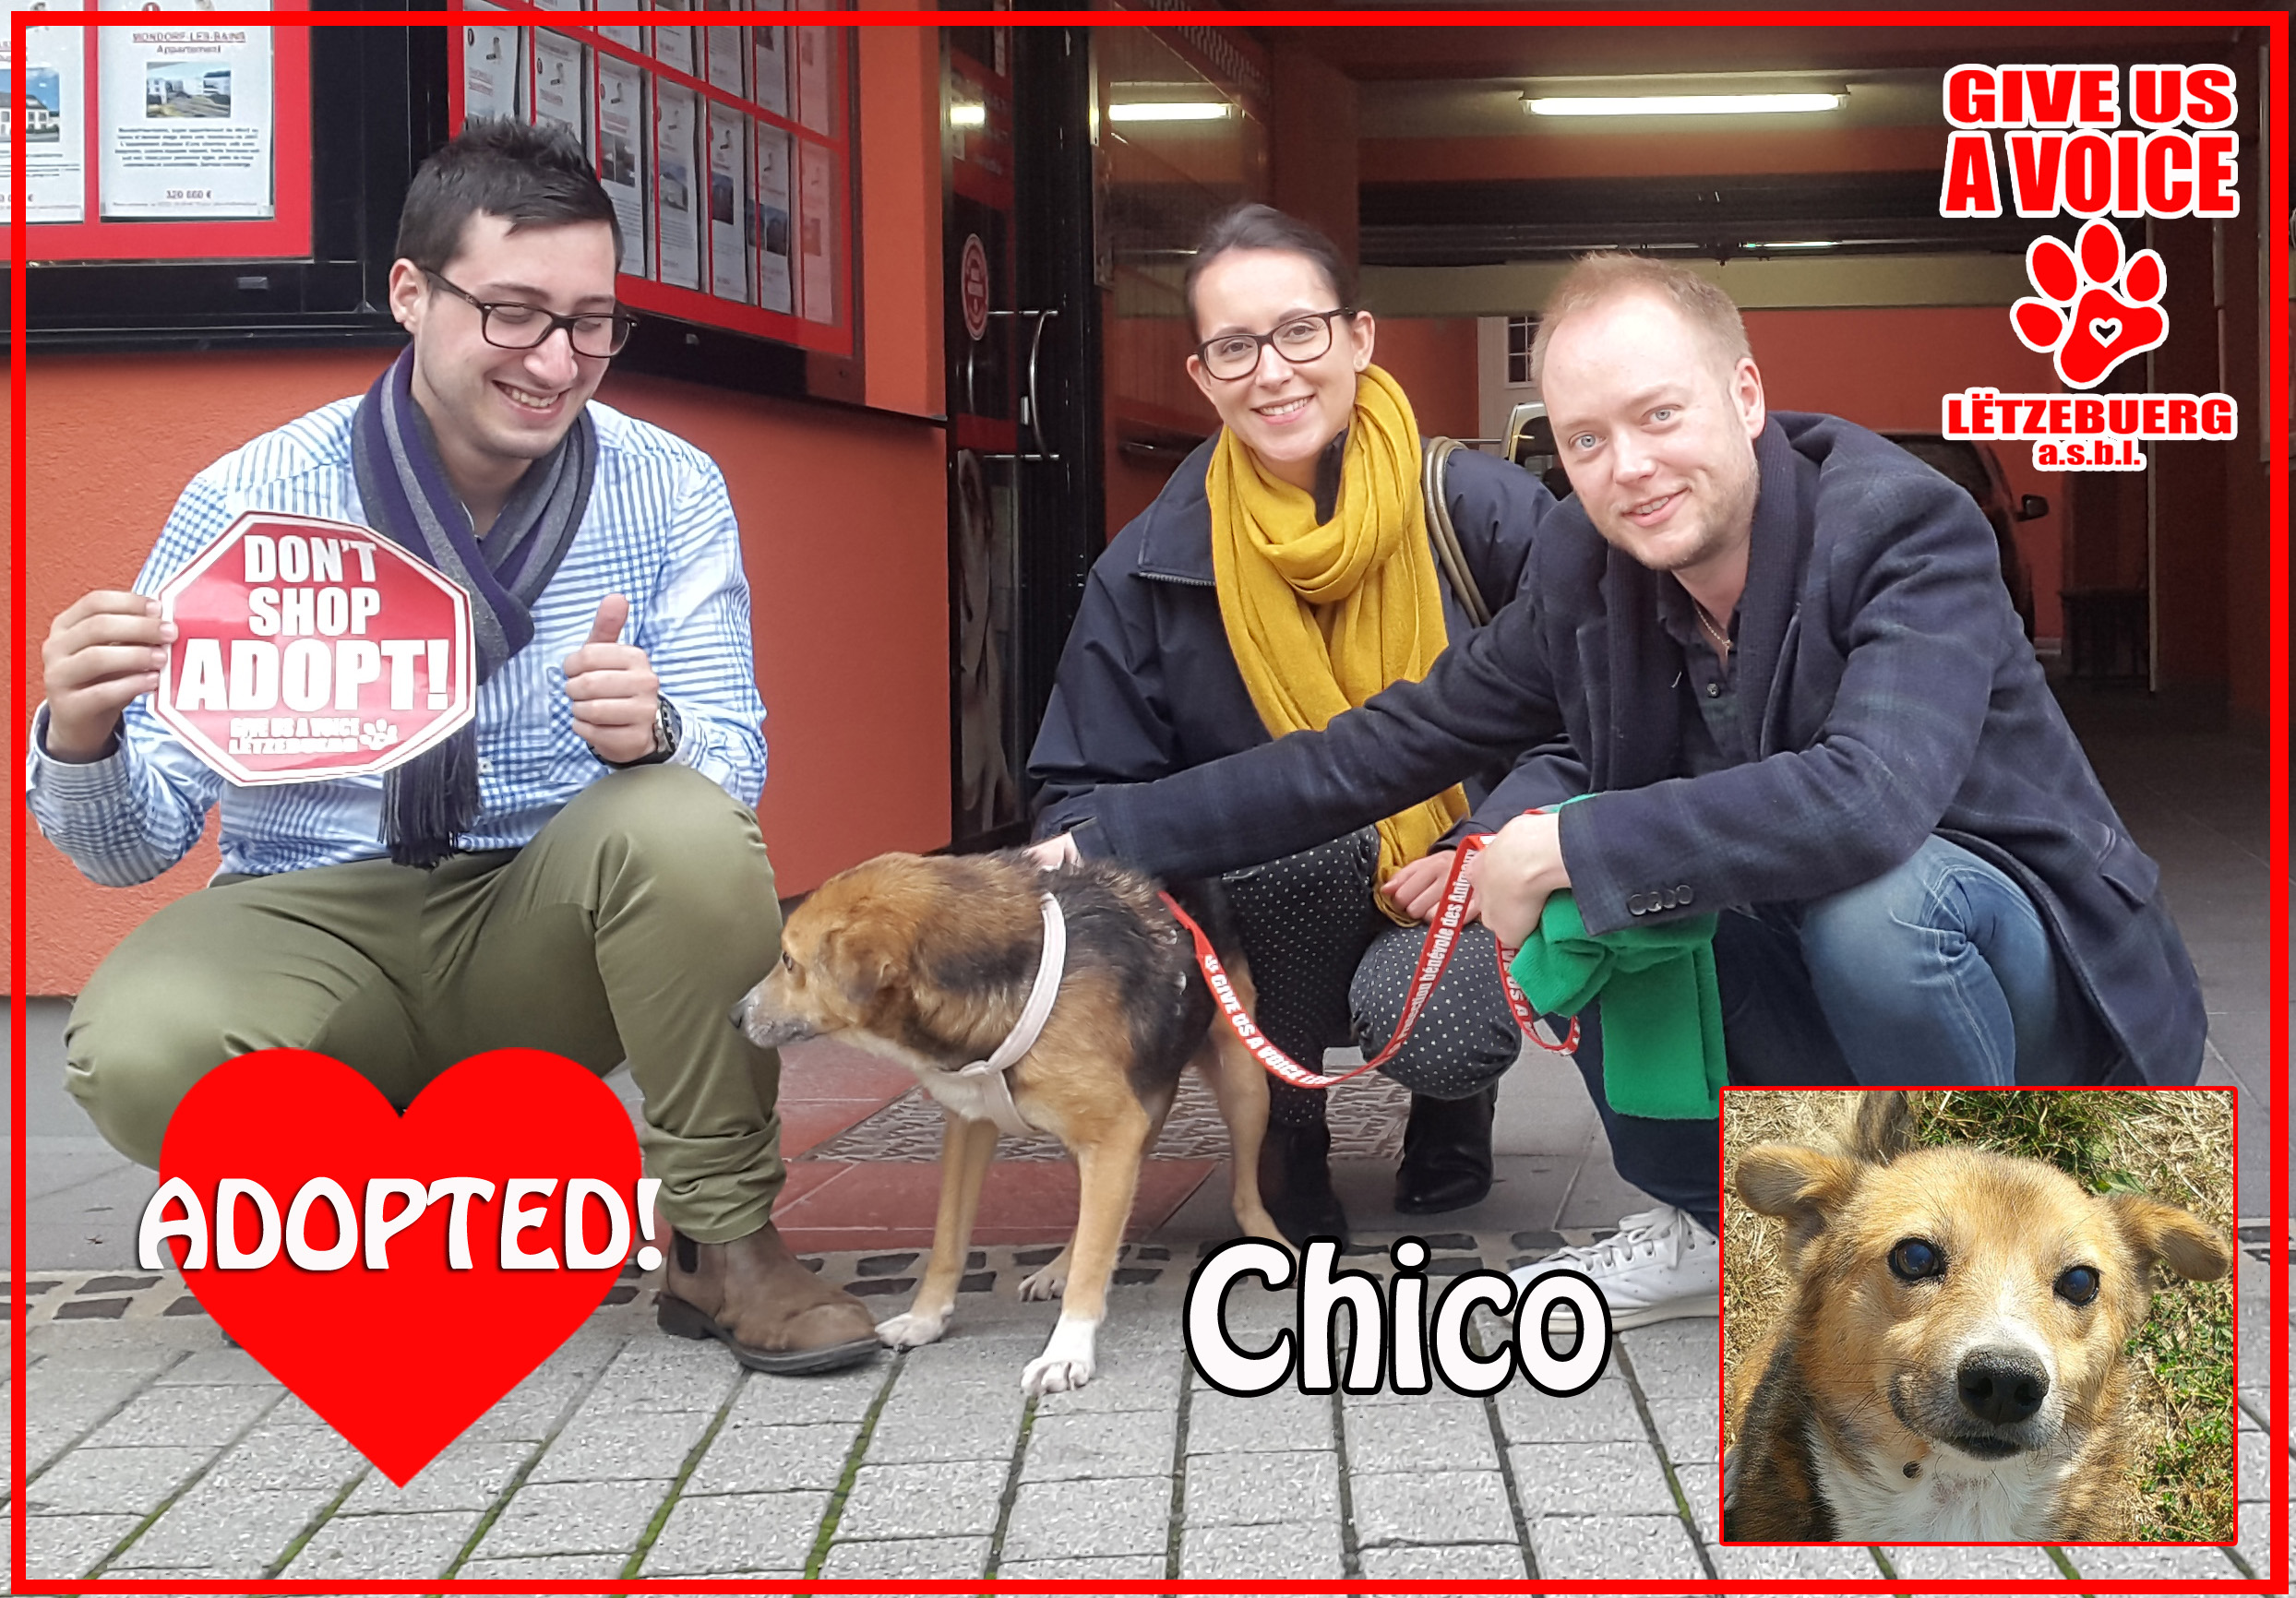 chico-adopted-copy